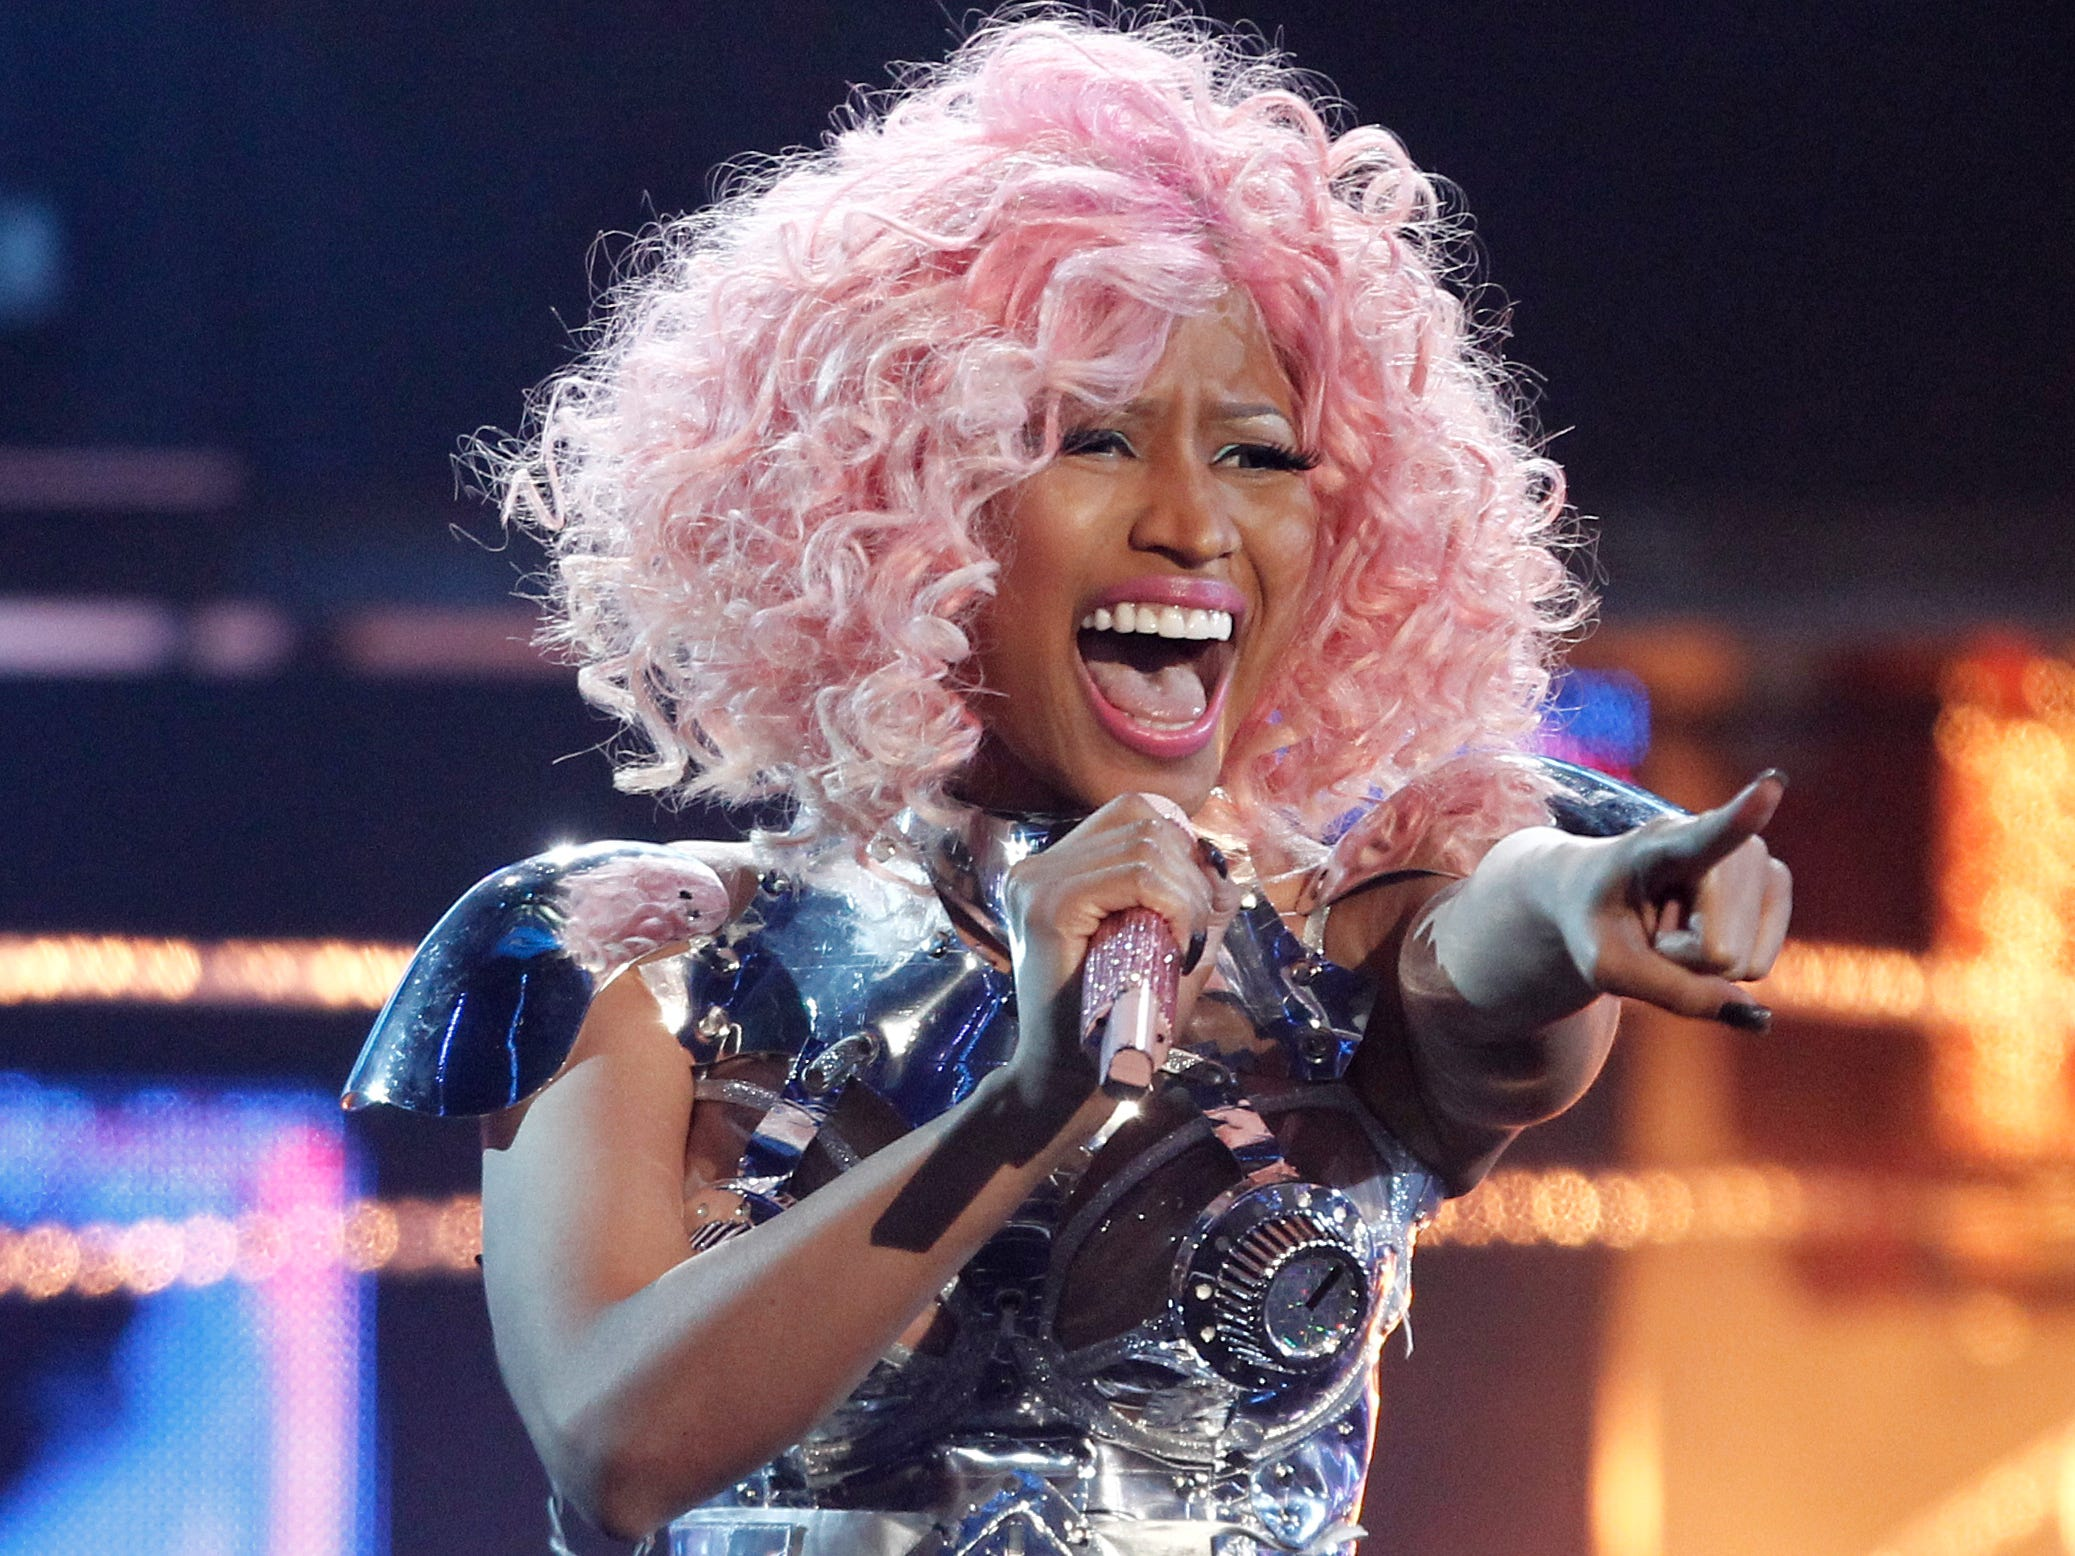 ORG XMIT: NYET563 FILE - In this Nov. 20, 2011 file photo, Nicki Minaj performs at the 39th Annual American Music Awards in Los Angeles. (AP Photo/Matt Sayles, file)